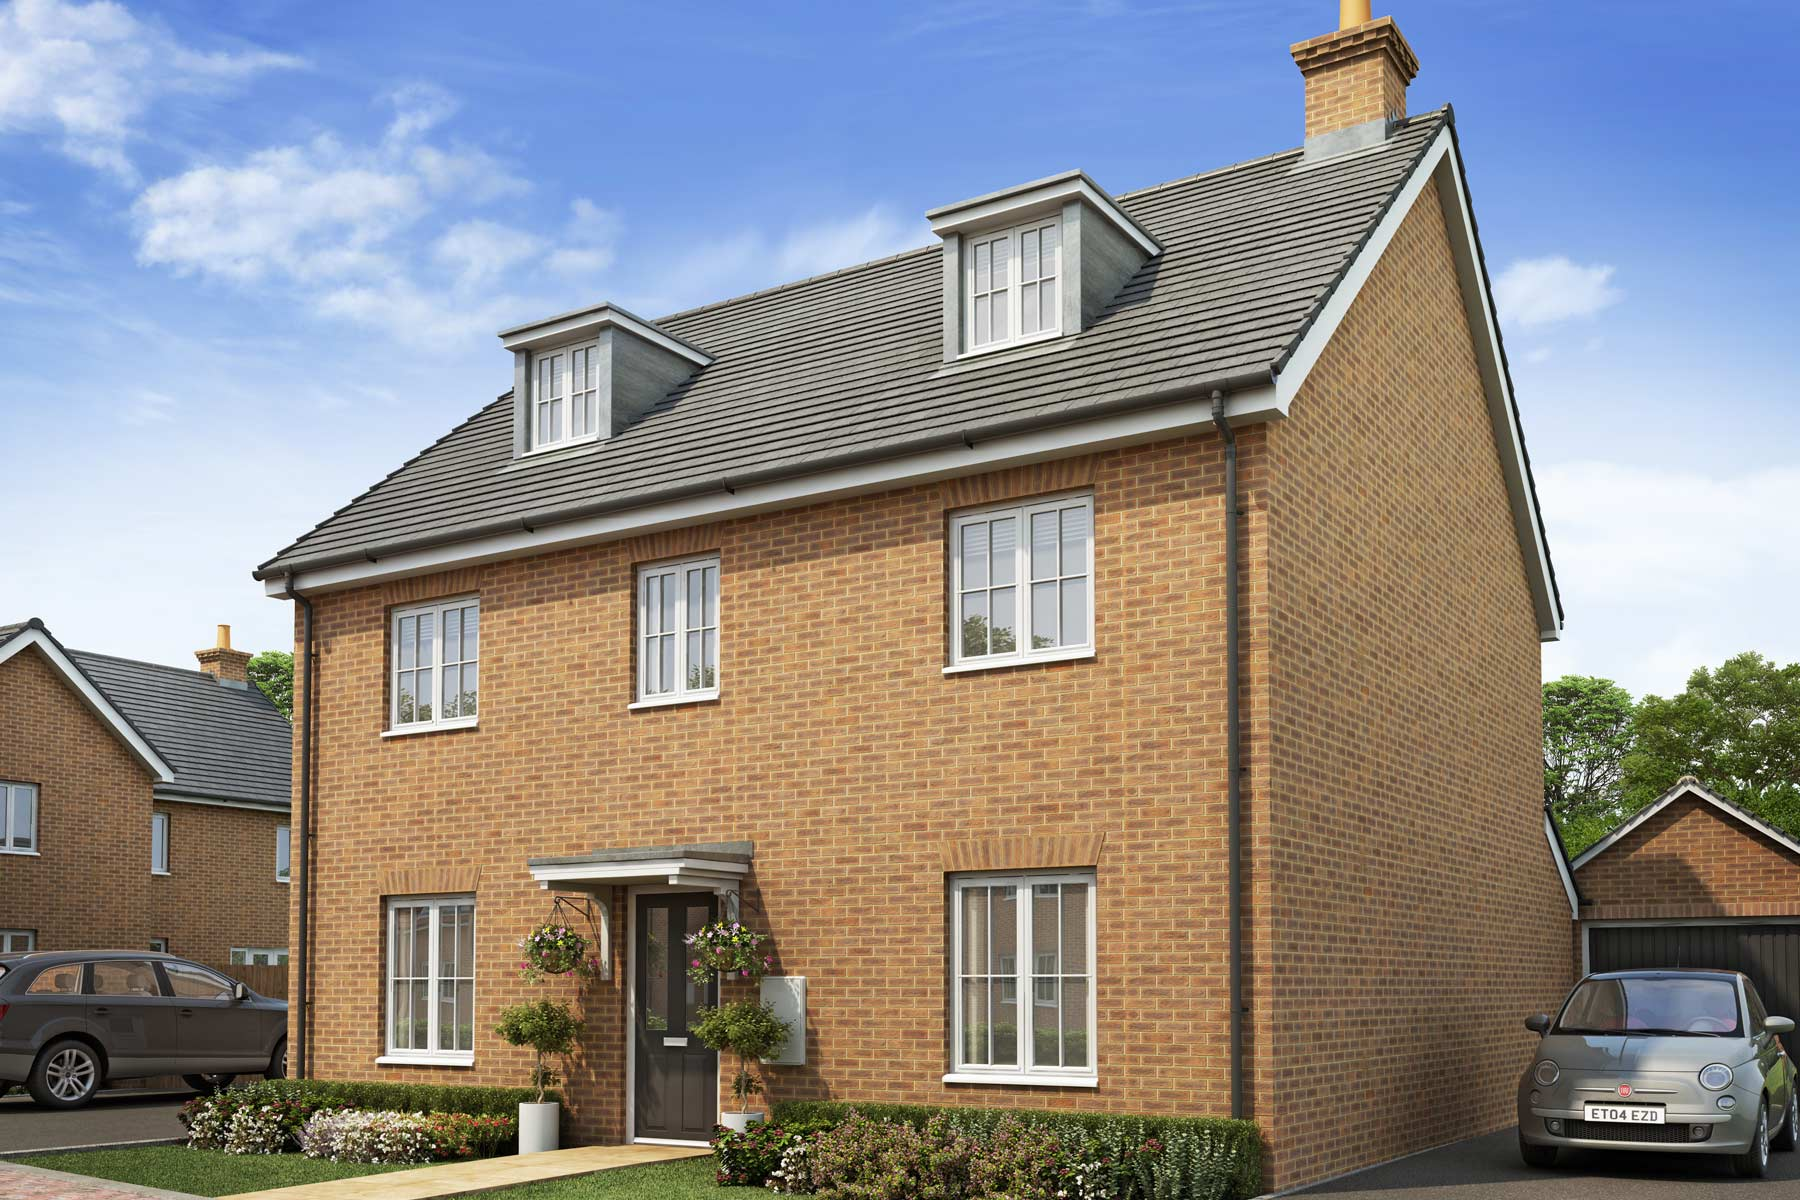 2024-Marsworth-V1-Plot-302_Web-Image